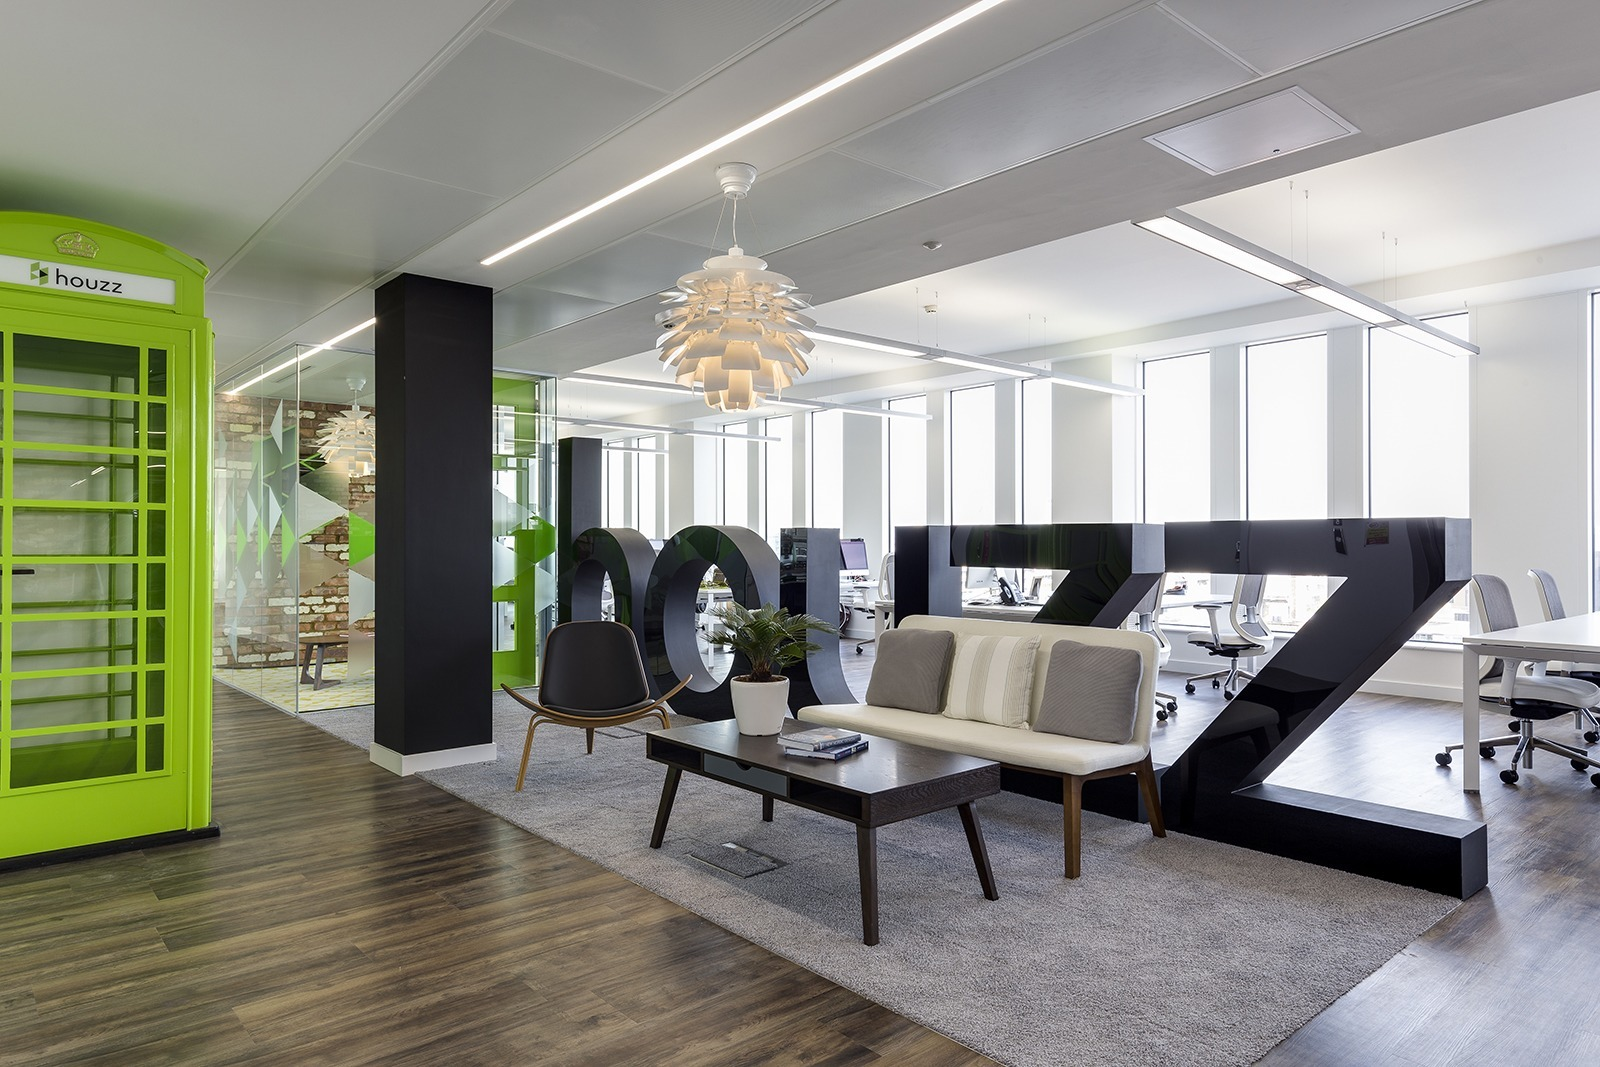 A tour of houzz s new european headquarters officelovin 39 for Home garden design houzz